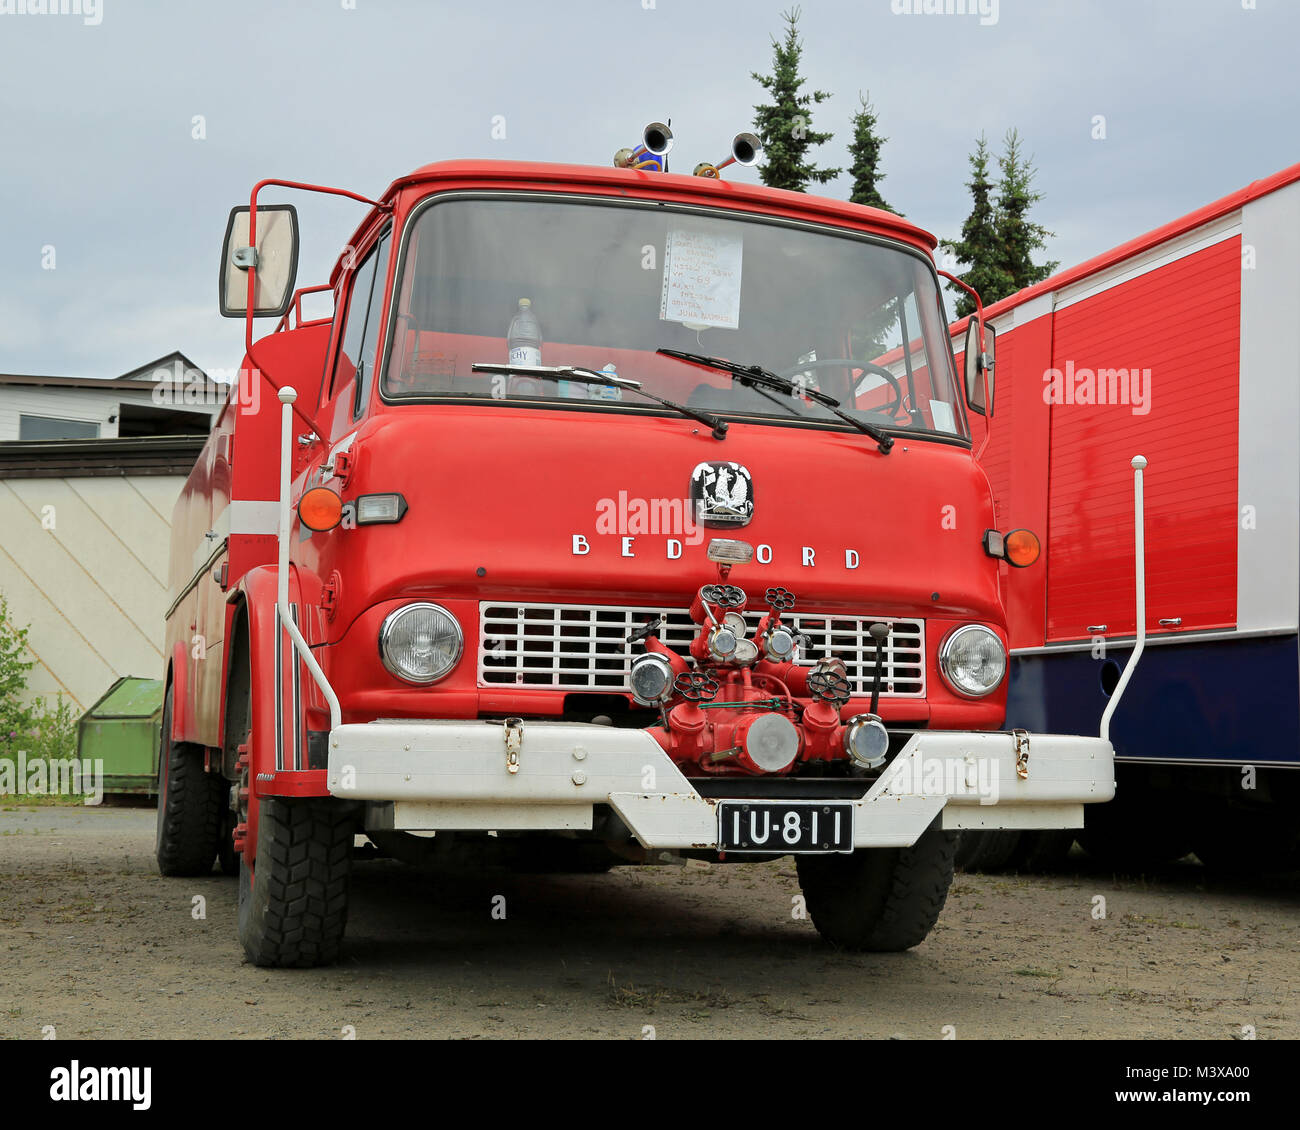 HATTULA, FINLAND - JULY 12, 2014: Vintage red Bedford EFQ1B tank truck year 1969 on display at Tawastia Truck Weekend - Stock Image